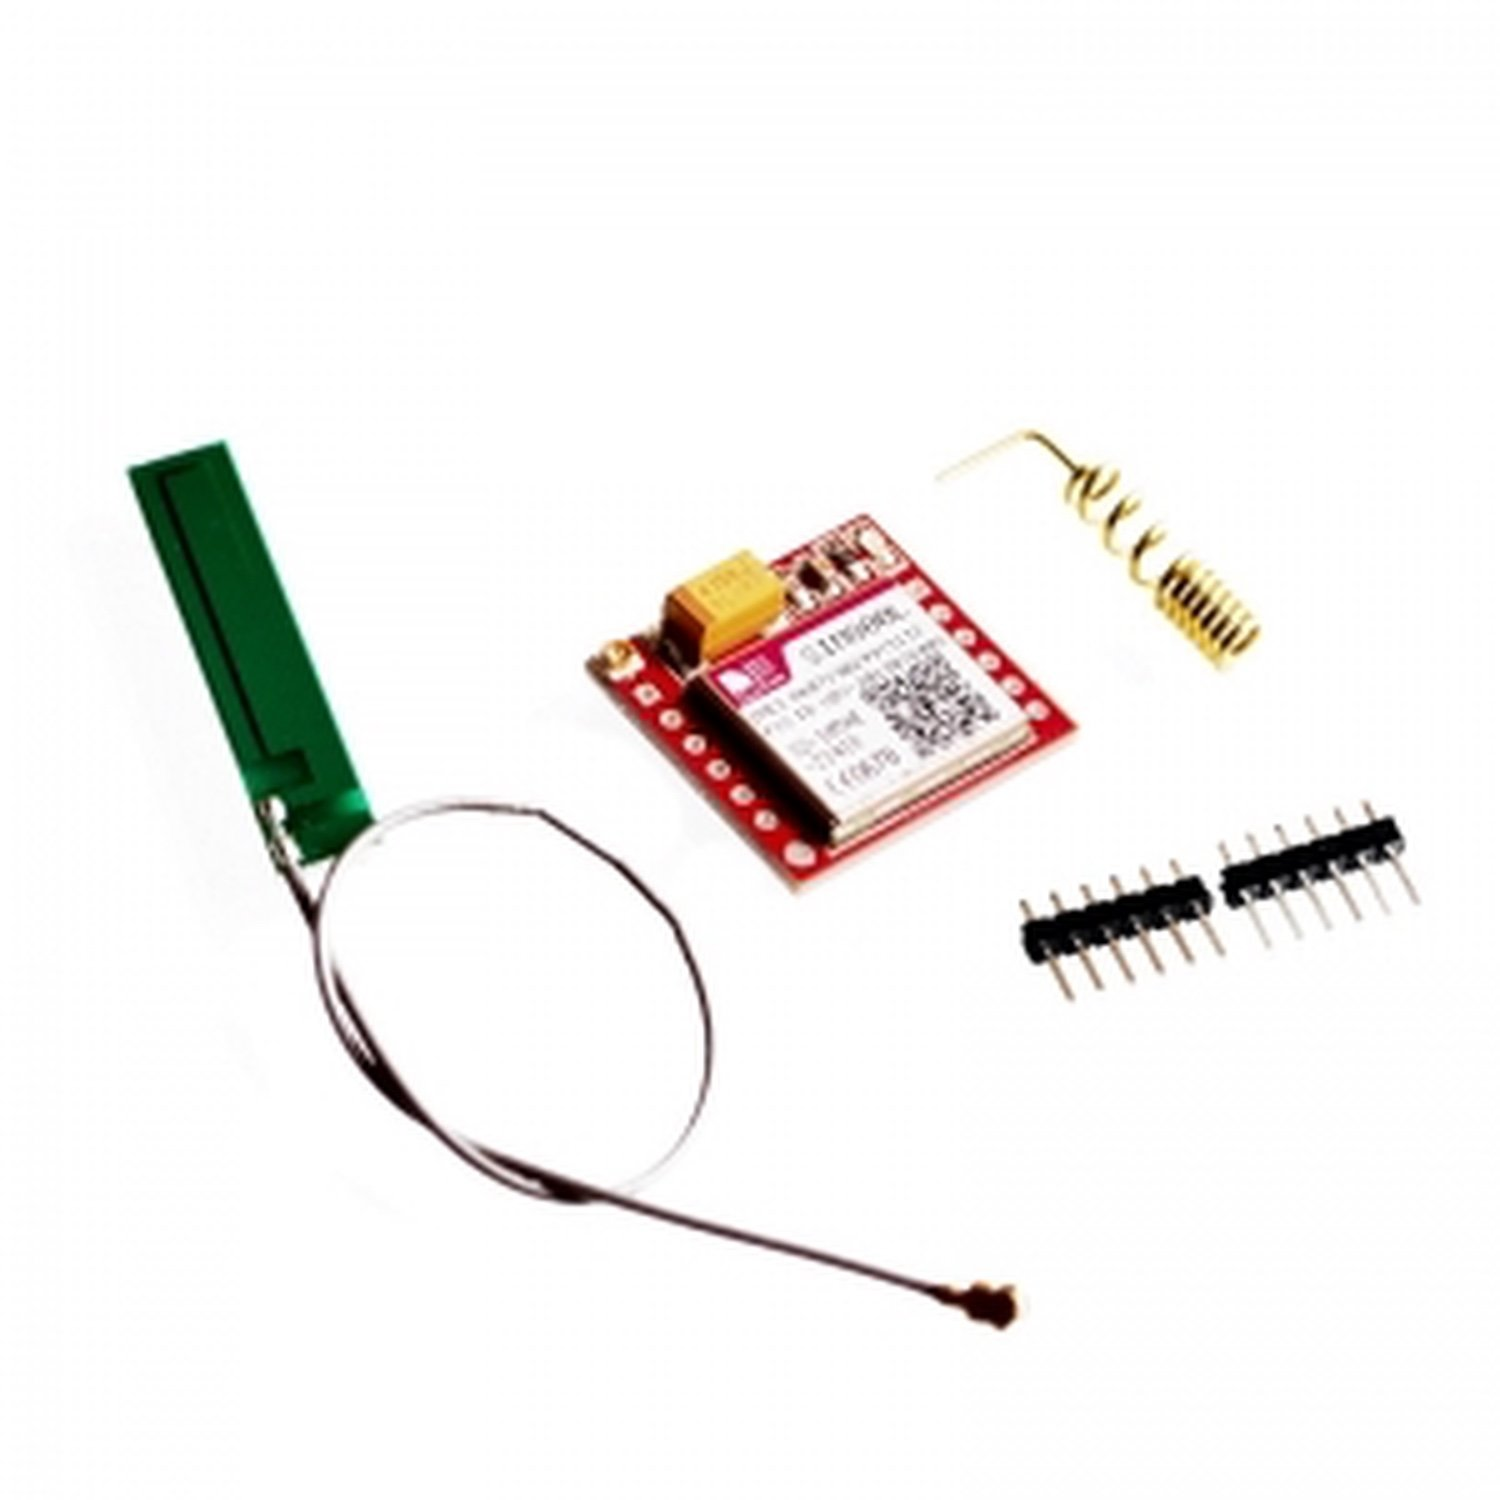 MINI SIM800L GPRS GSM Module PCB Antenna SIM Board for MCU Arduino Quad-Band цена и фото